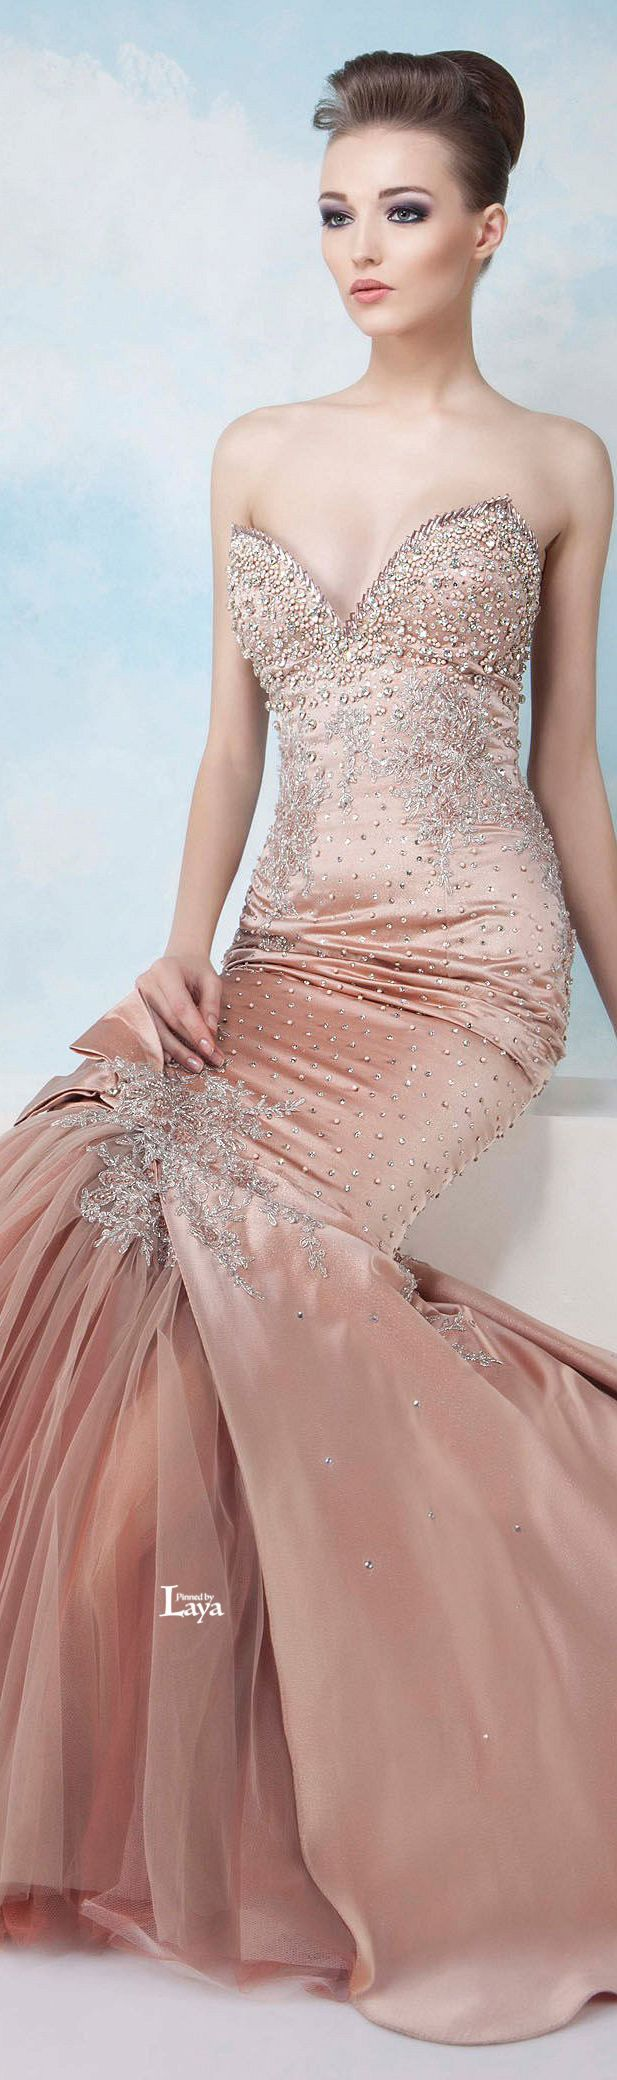 32 best dani\'s dress images on Pinterest | Gown wedding, Short ...